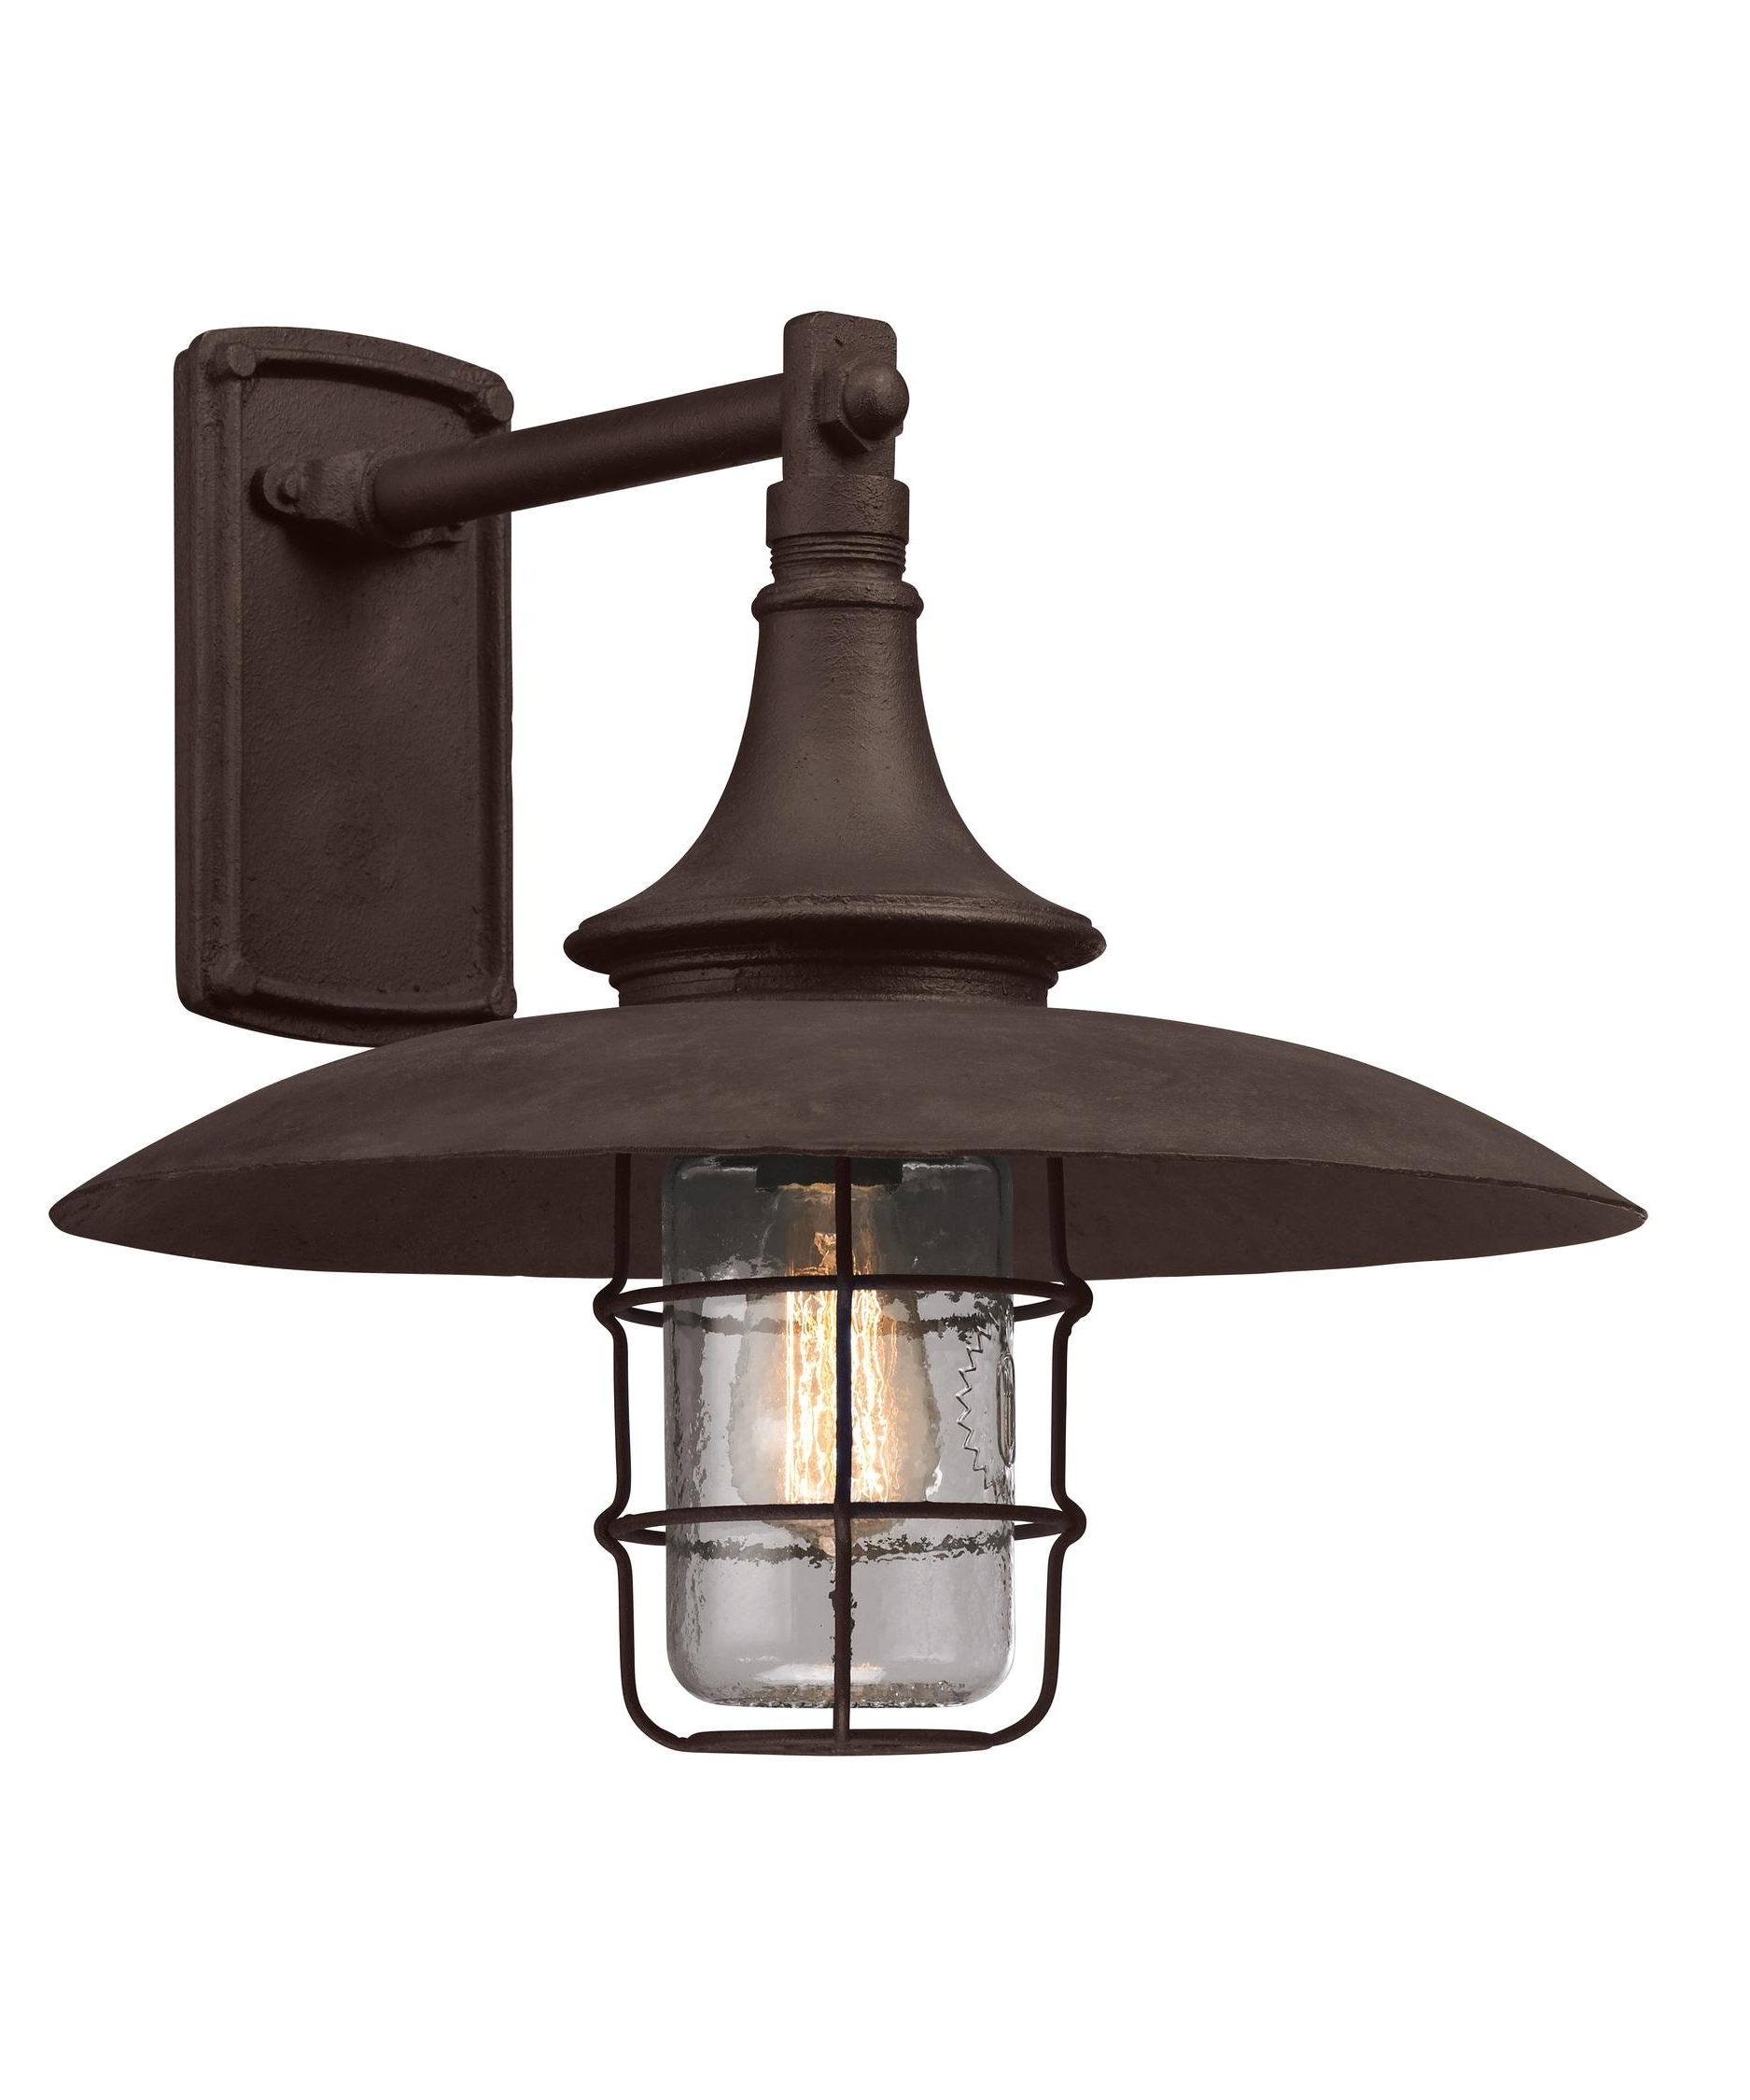 Rustic Outdoor Wall Lighting Throughout 2018 Troy Lighting B3222 Allegany 16 Inch Wide 1 Light Outdoor Wall Light (View 16 of 20)